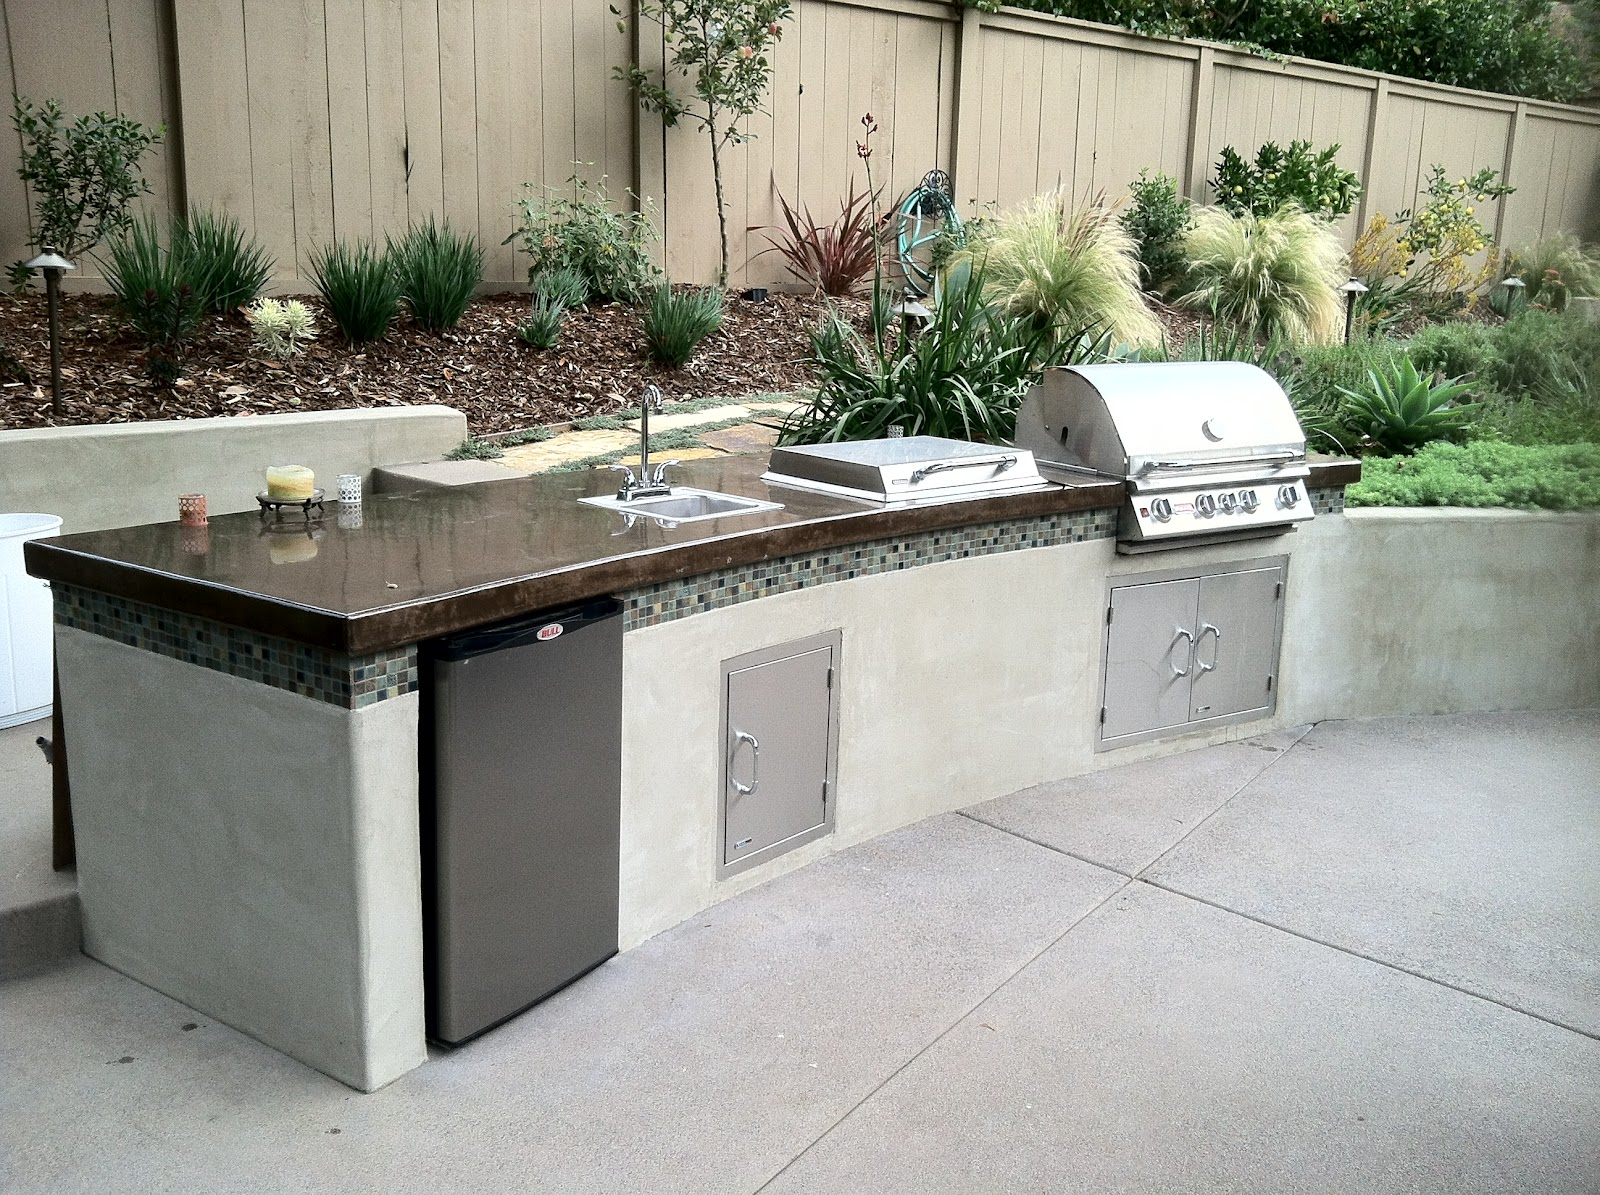 outdoor kitchen island Stucco Stone front with porcelain tile counter and bar ledge even has a stereo and under bar lights Outdoor BBQ Kitchen Islands Pinterest